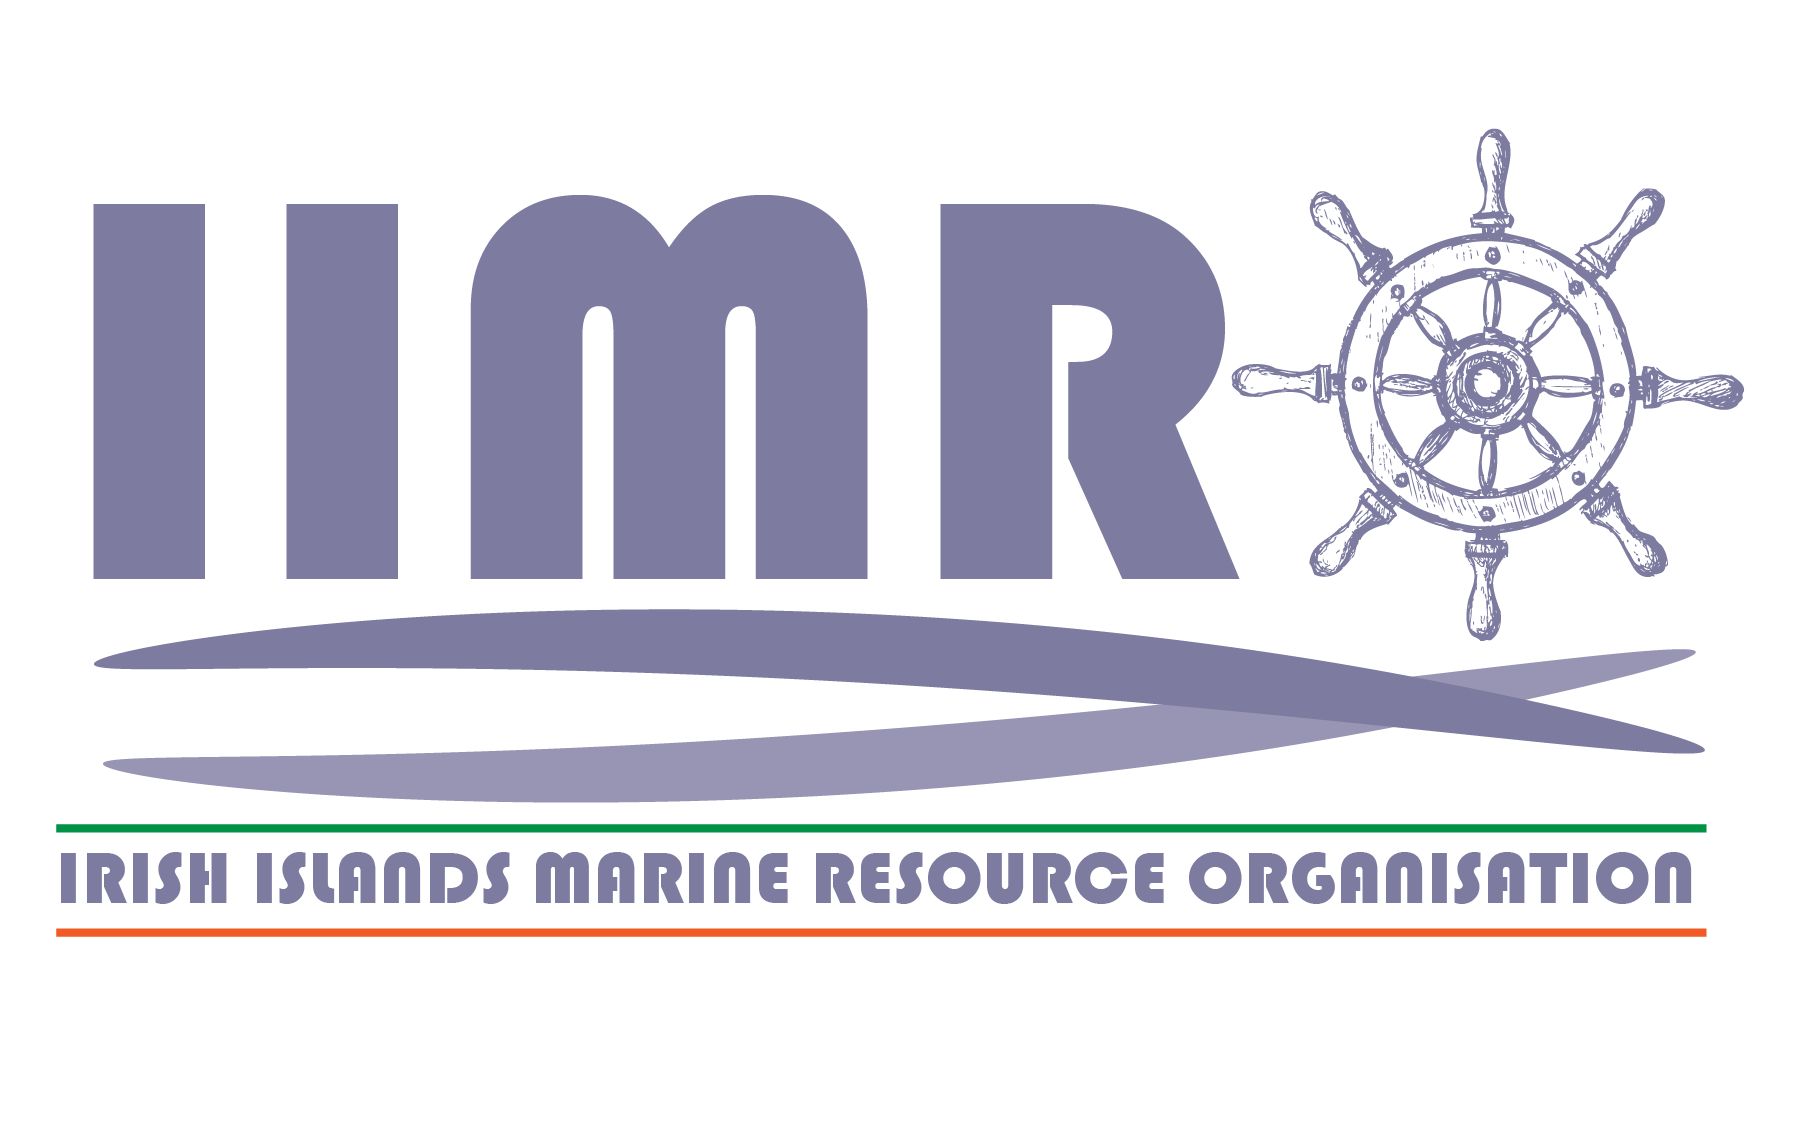 IIMRO) has been recognised as an EU Seafood Producer Organisation